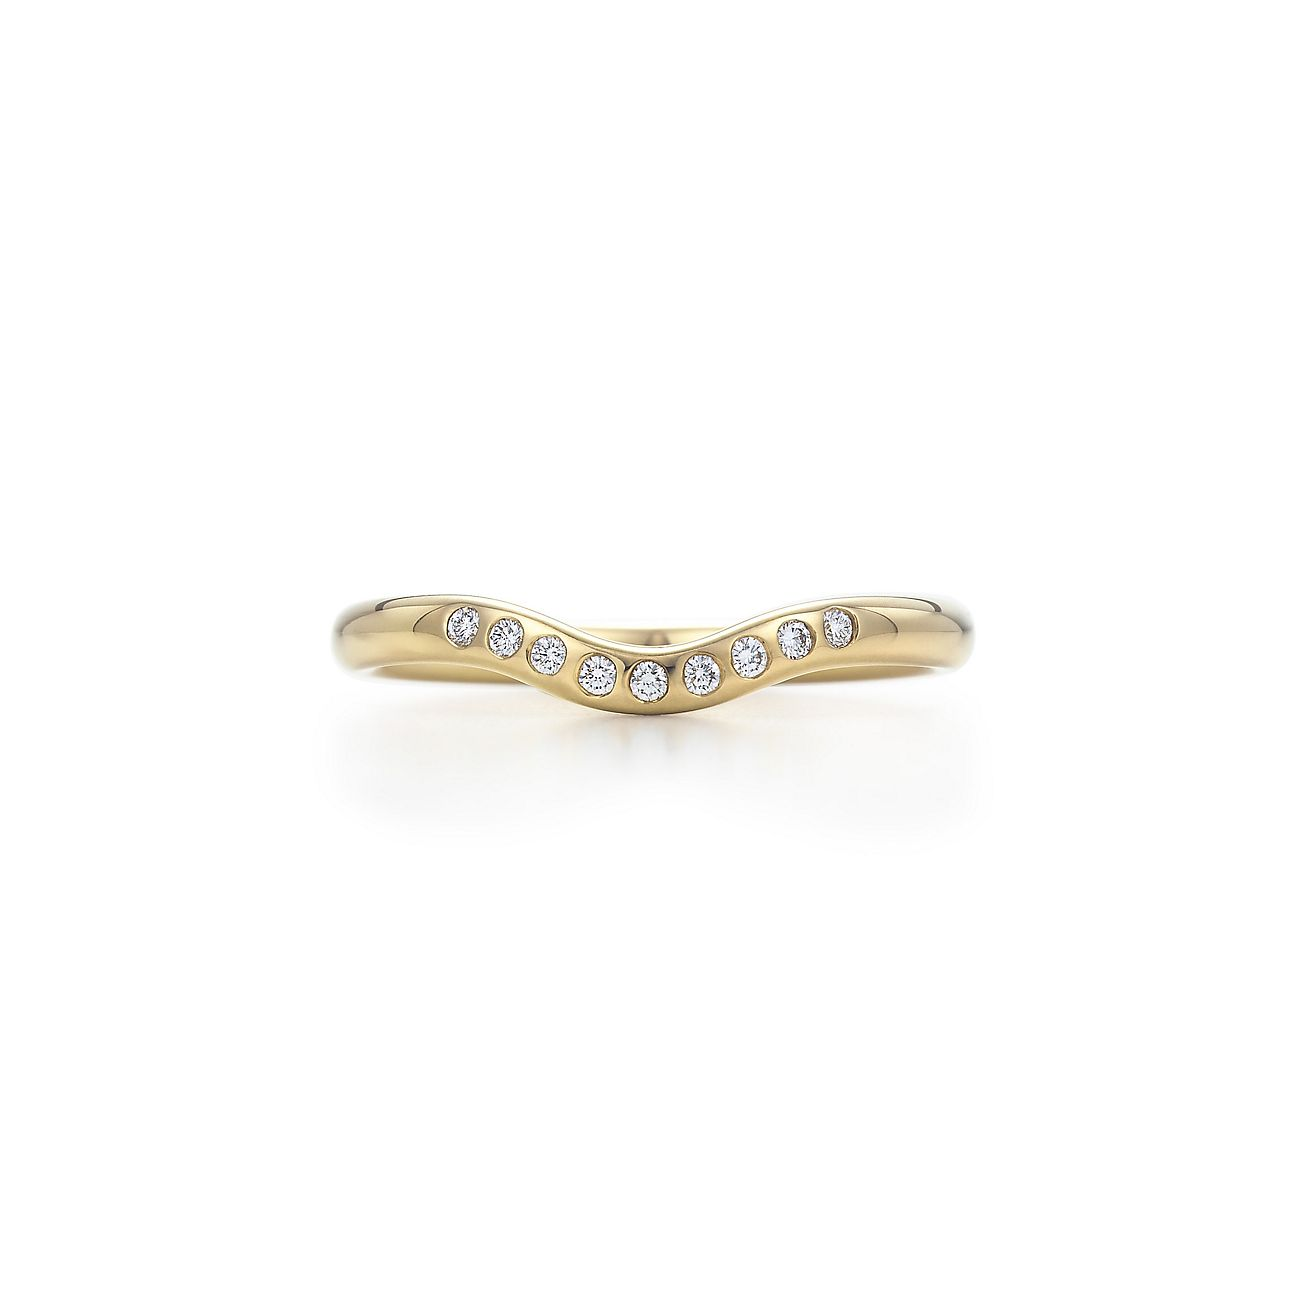 Elsa Peretti wedding band ring with diamonds in 18k gold Tiffany